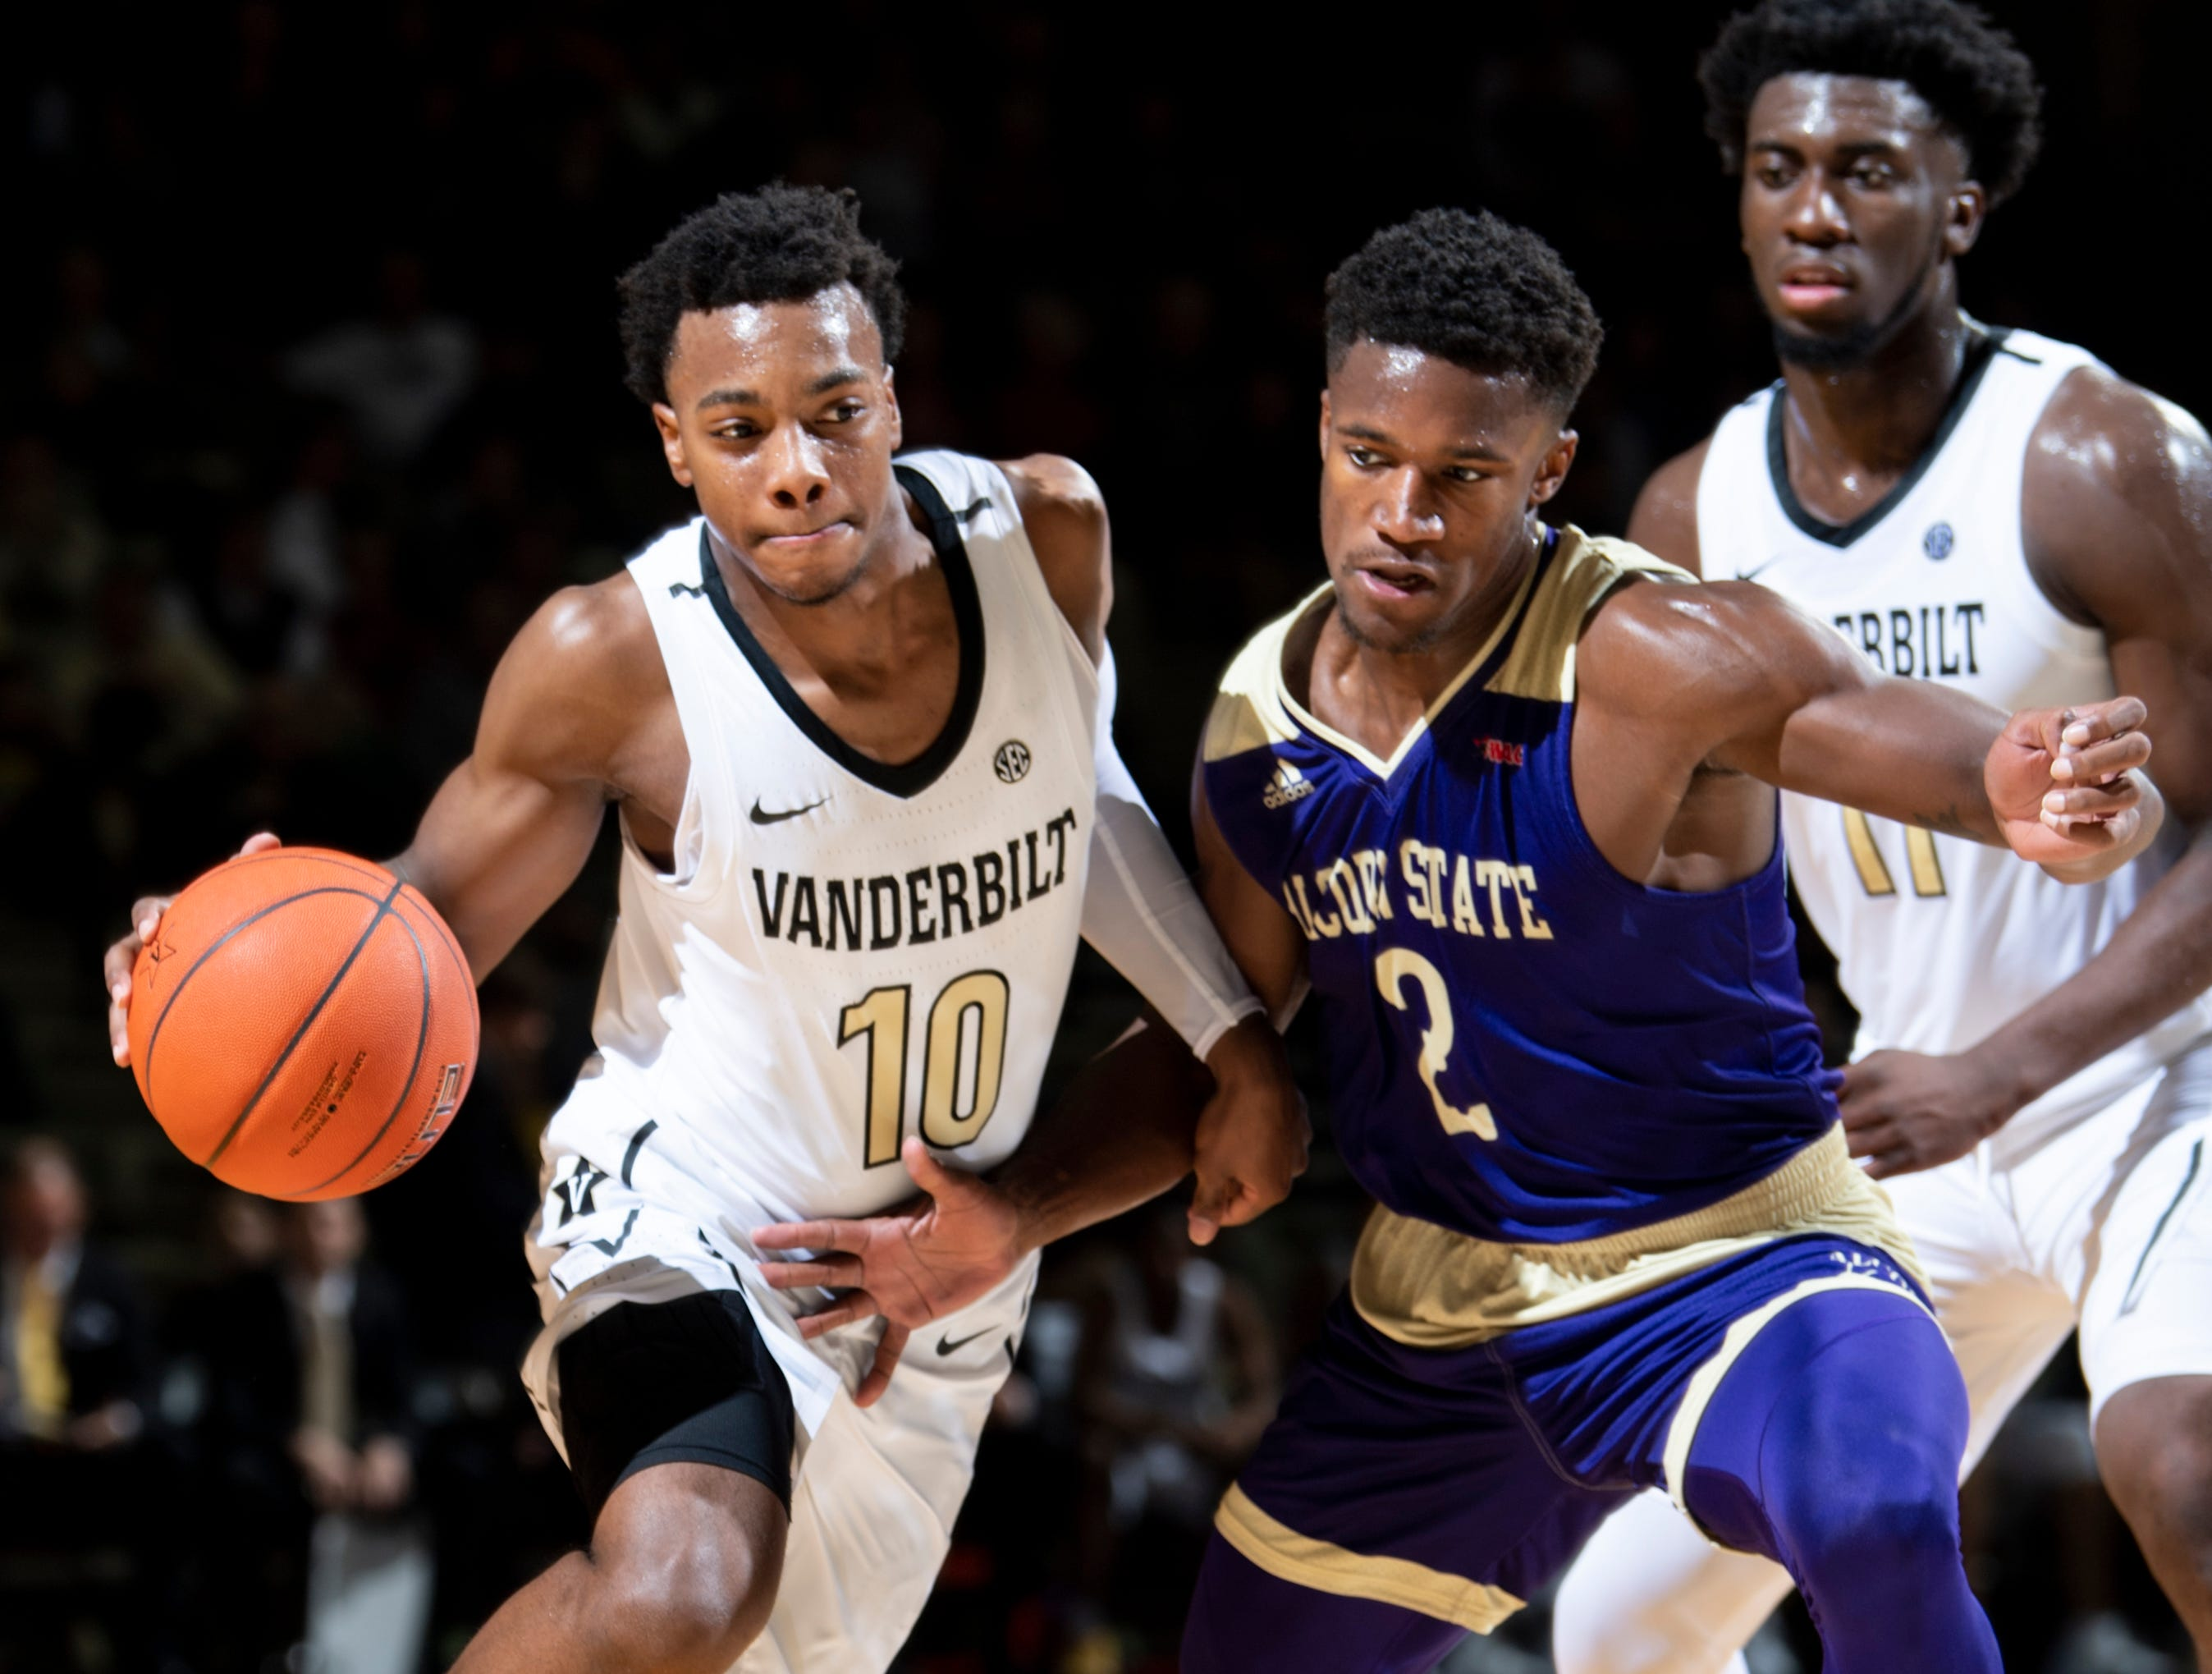 Darius Garland: Garland was supposed to uplift Vandy's hopes in 2018-19, but the Brentwood Academy alum hurt his knee early in the season.